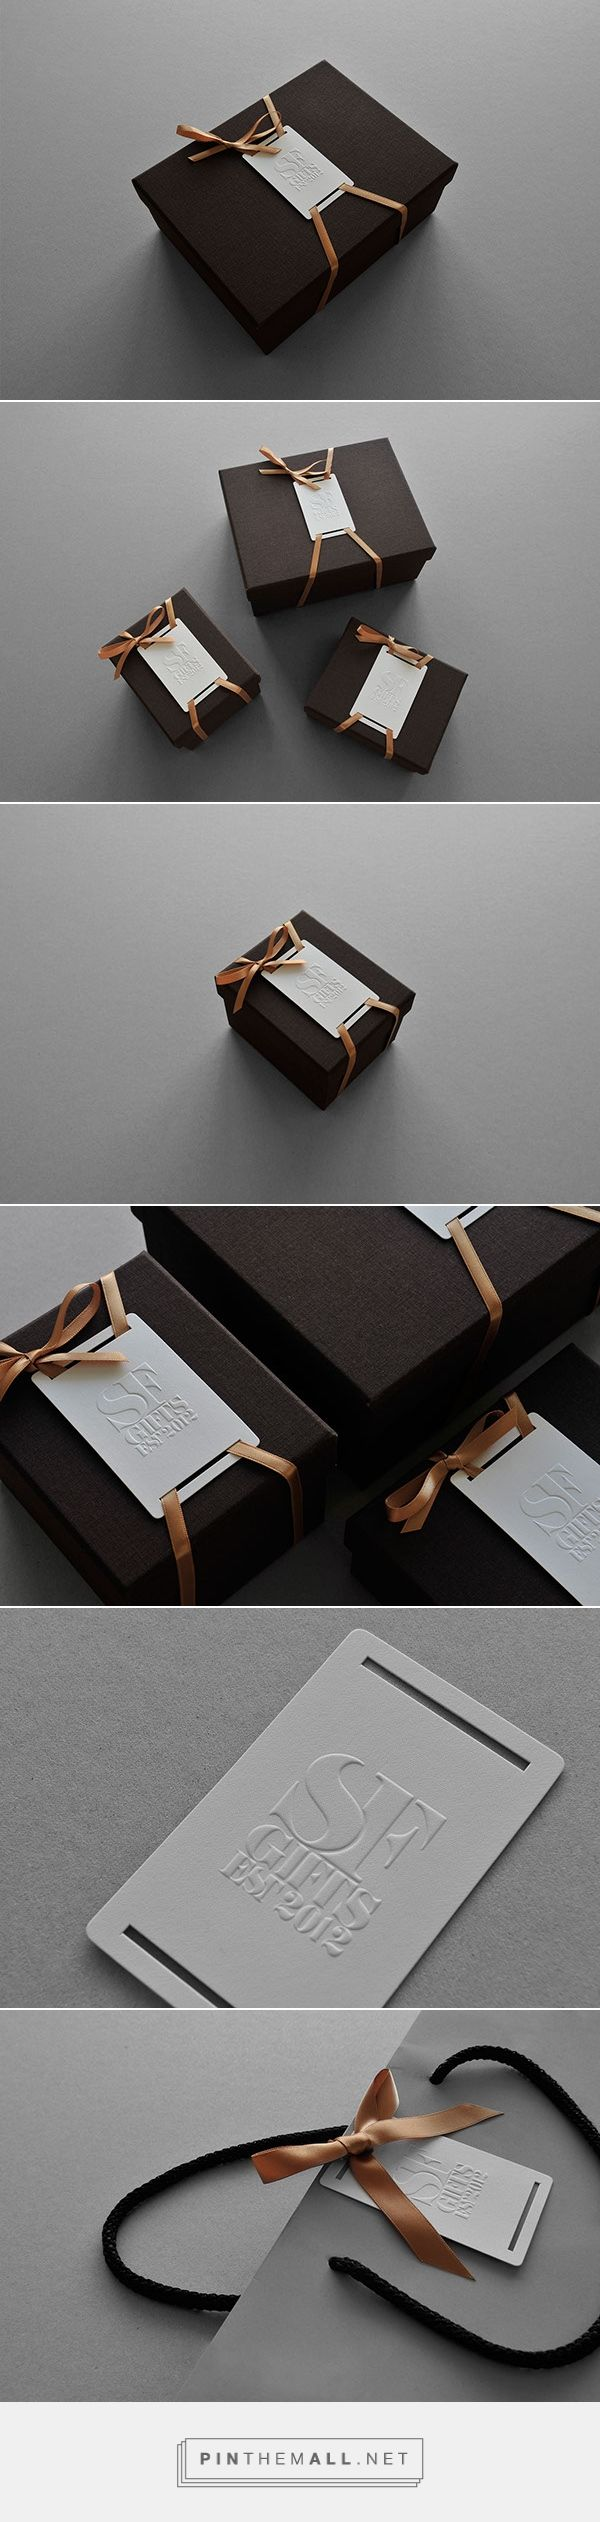 SF Gifts on Behance